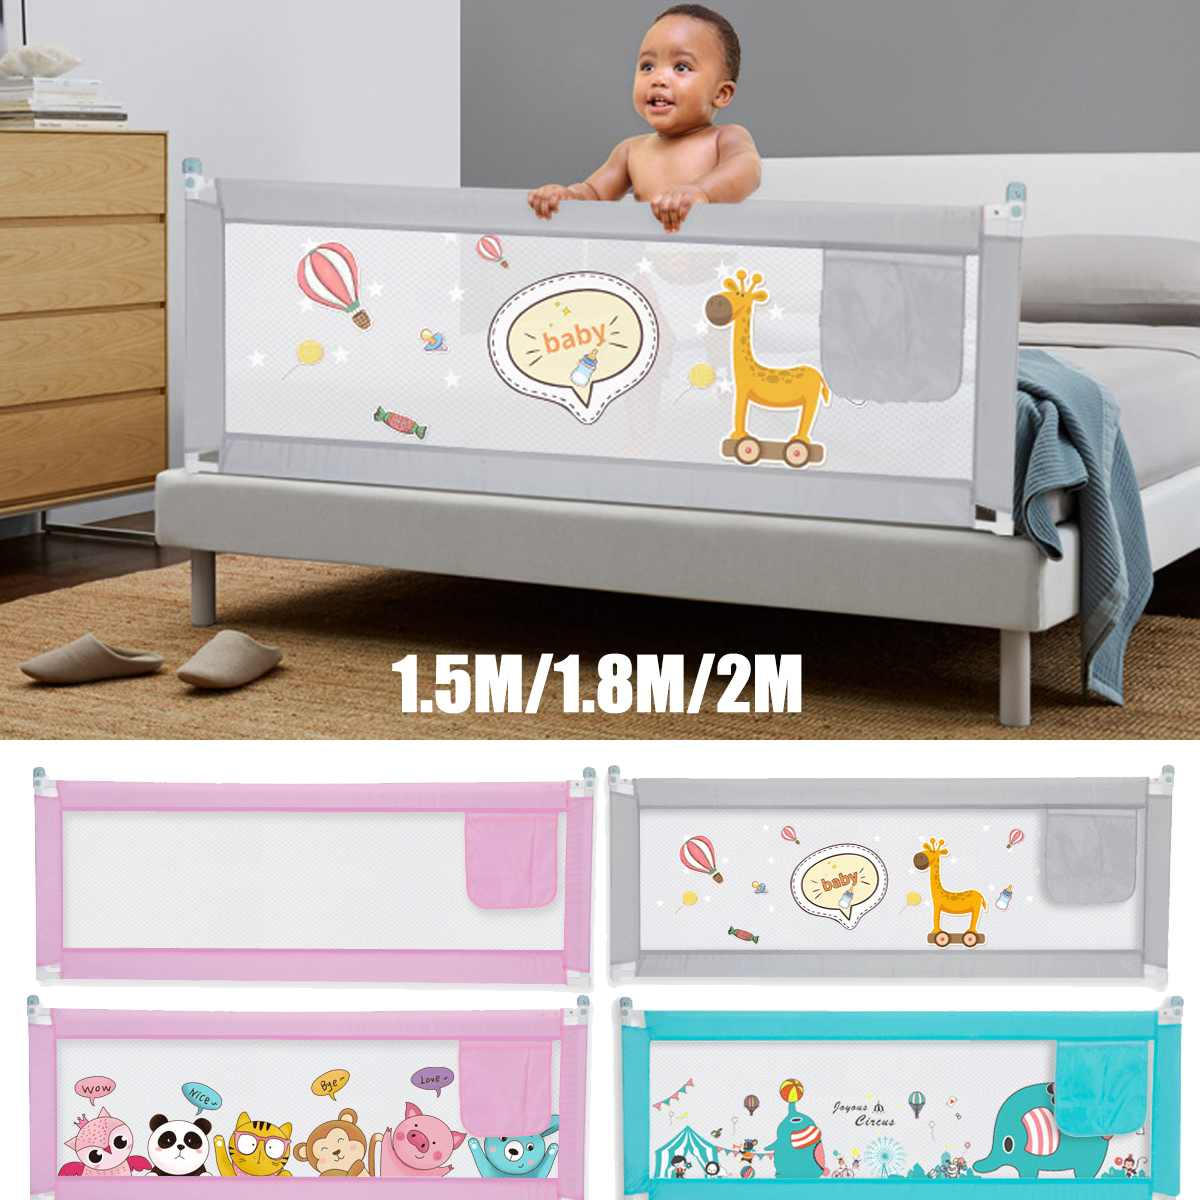 1.5M/1.8M/2M Adjustable Baby Playpen Bed Safety Rails For Babies Children Fences Fence Baby Safety Gate Crib Barrier For Infants